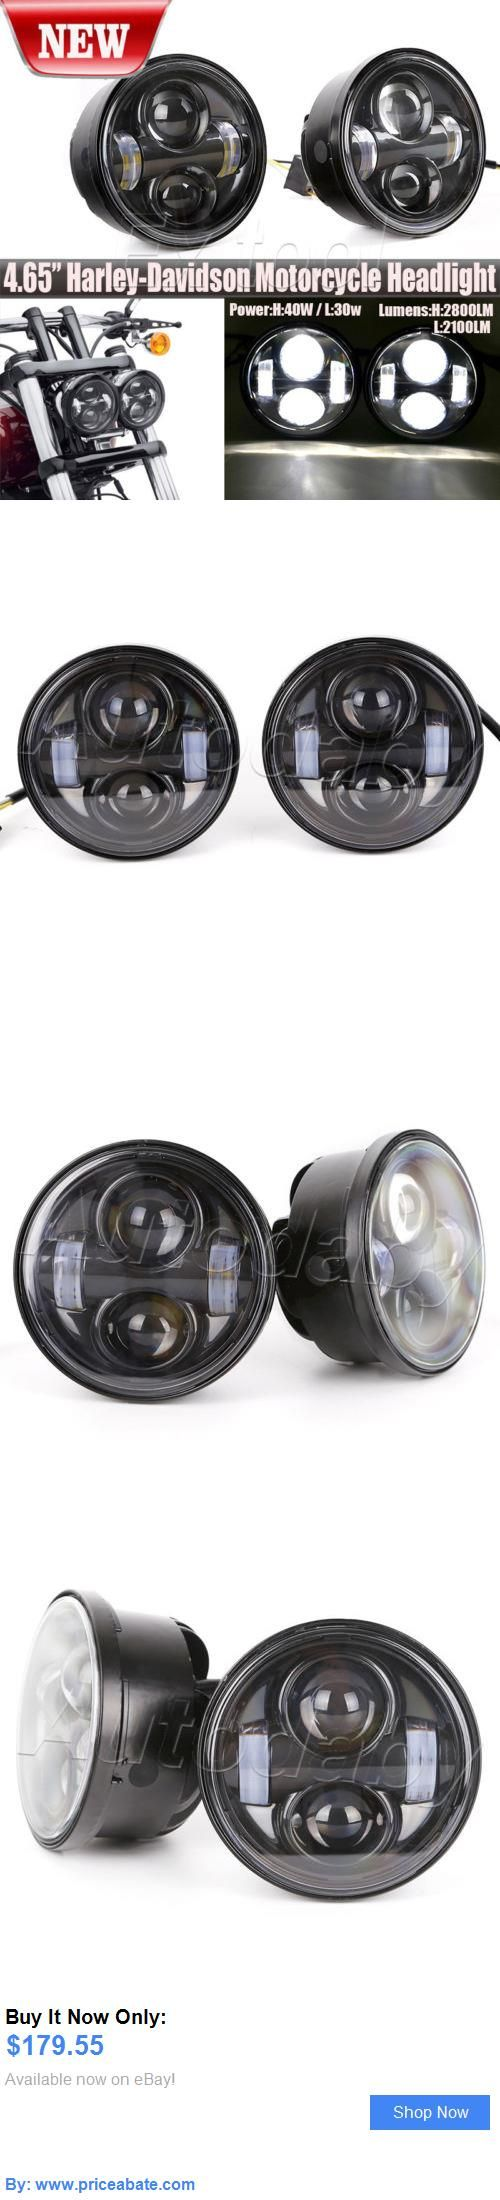 motorcycle parts: 2Pcs Black 80W 4.65 For Harley Davidson Dyna Glide Fat Bob Led Headlight Lights BUY IT NOW ONLY: $179.55 #priceabatemotorcycleparts OR #priceabate